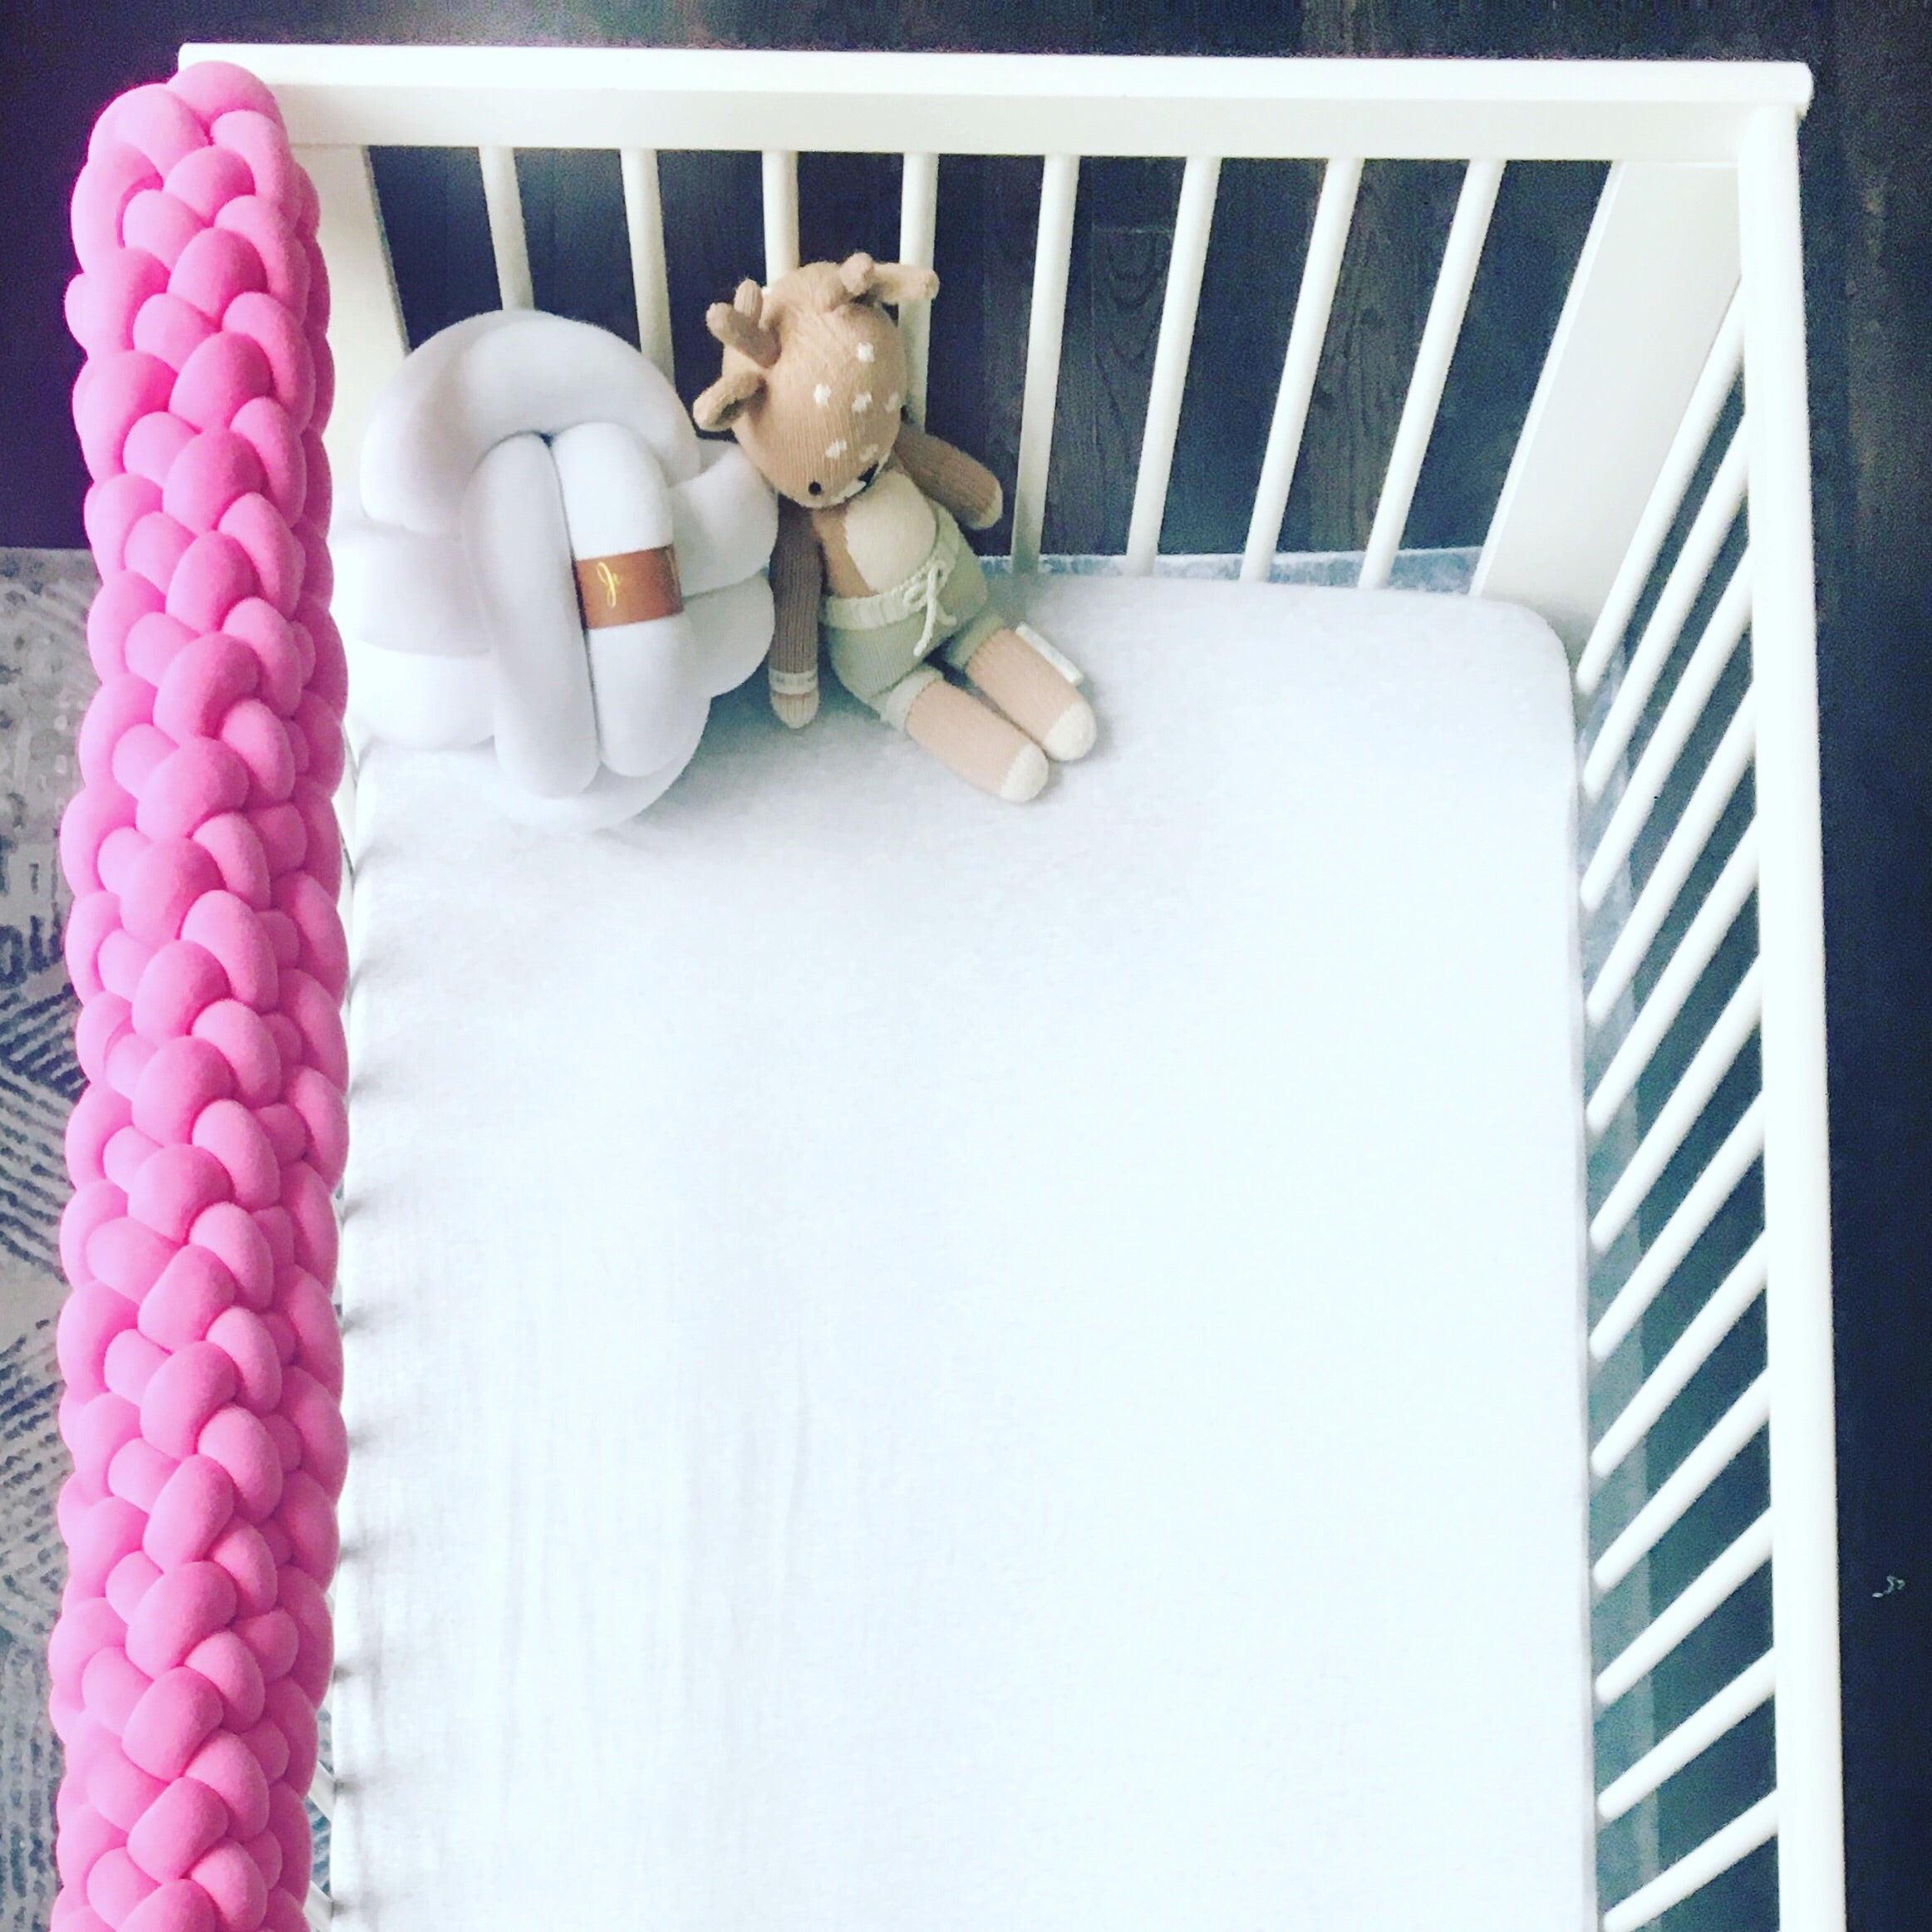 Braided Crib Rail Cover